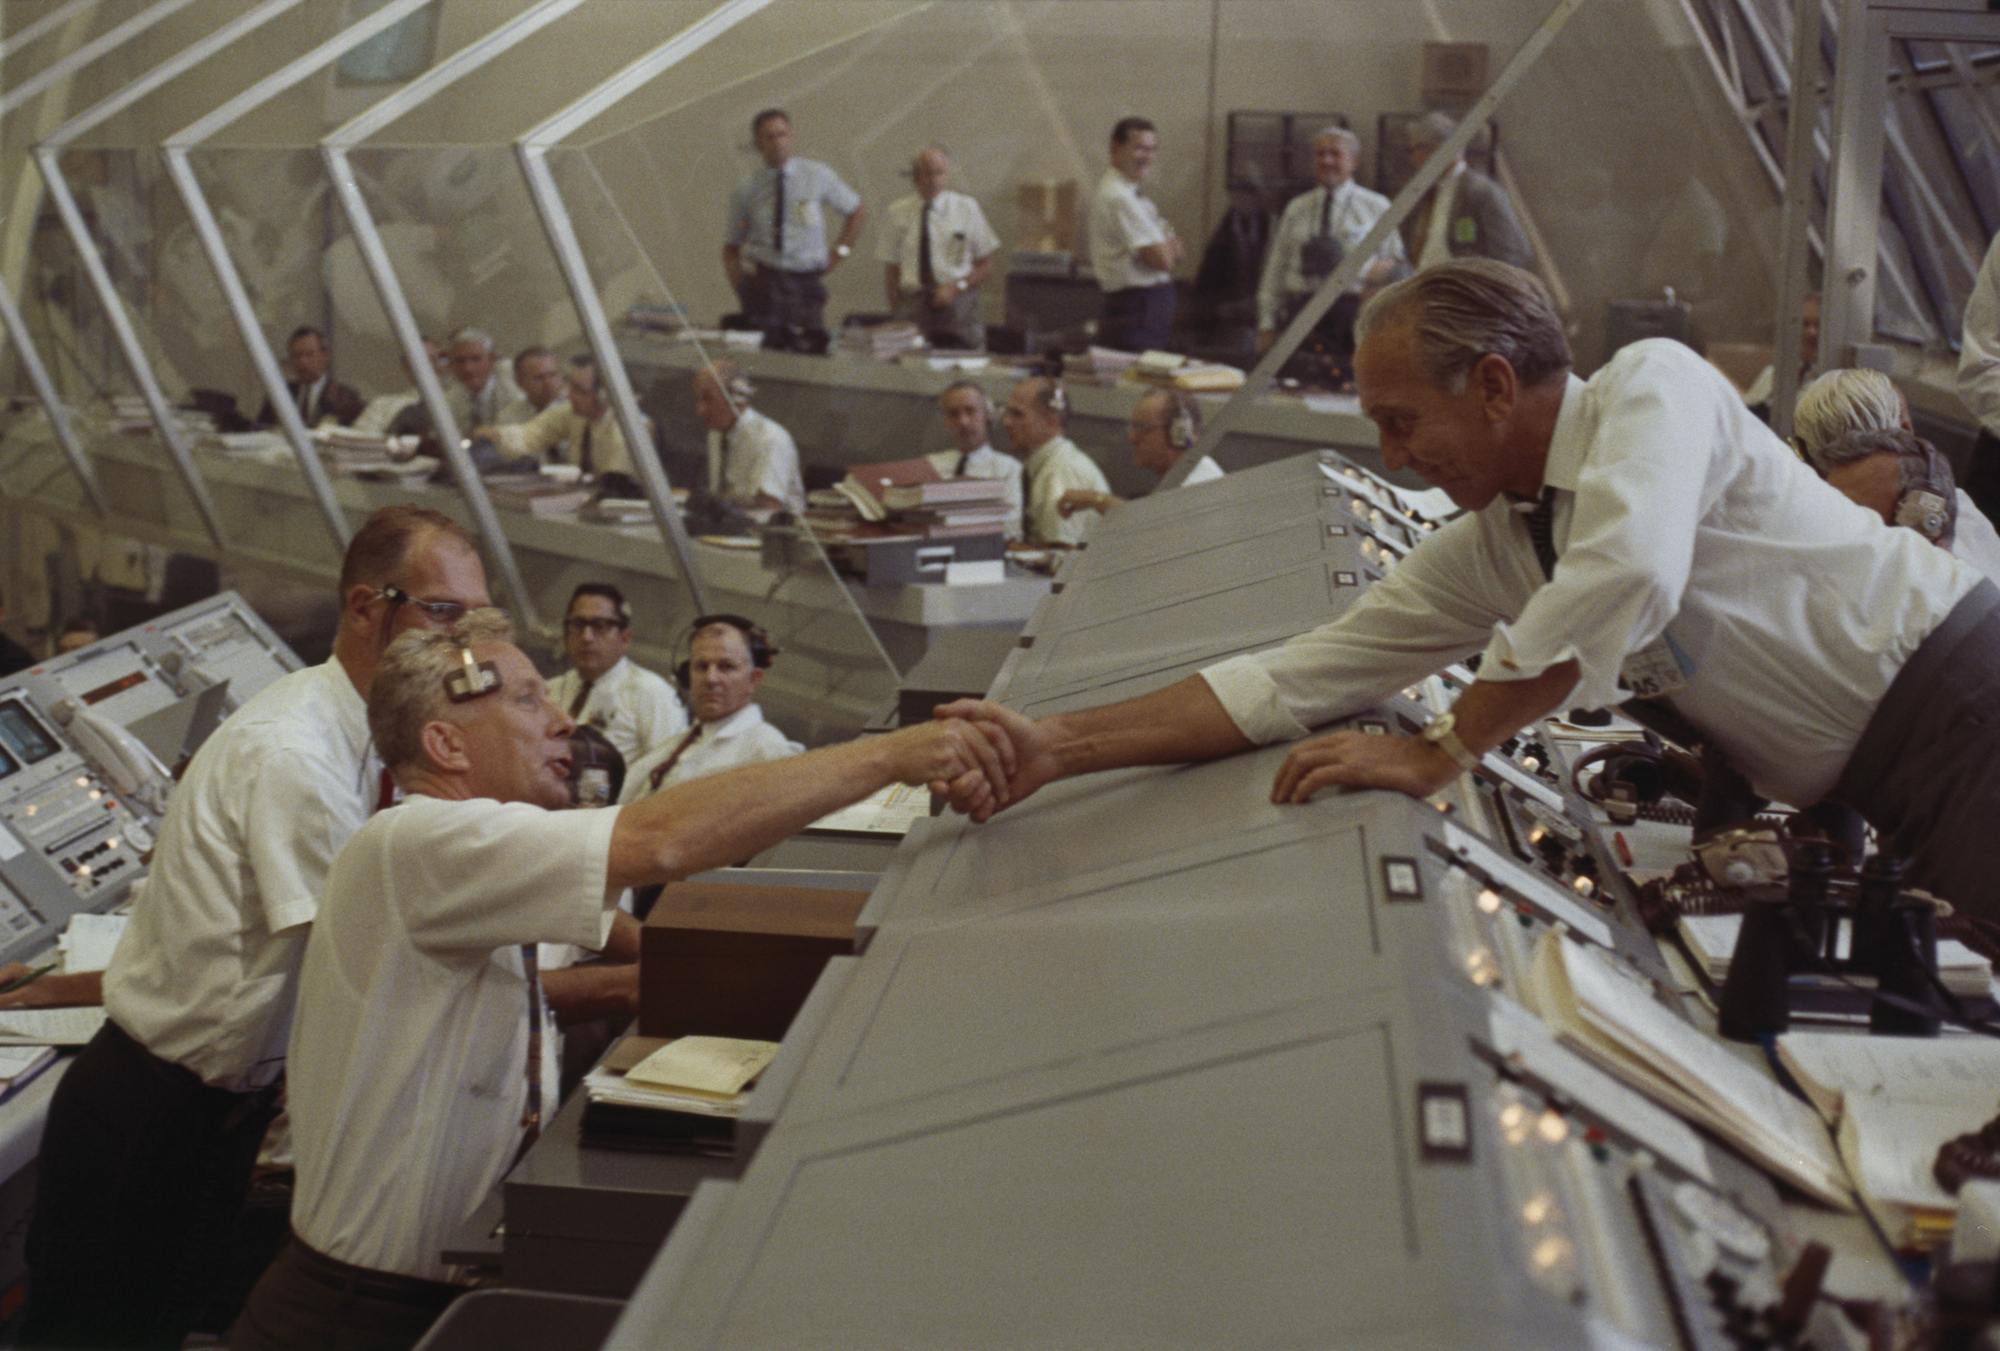 Flurry of handshakes erupts after successful launch of Apollo 11. (NASA)